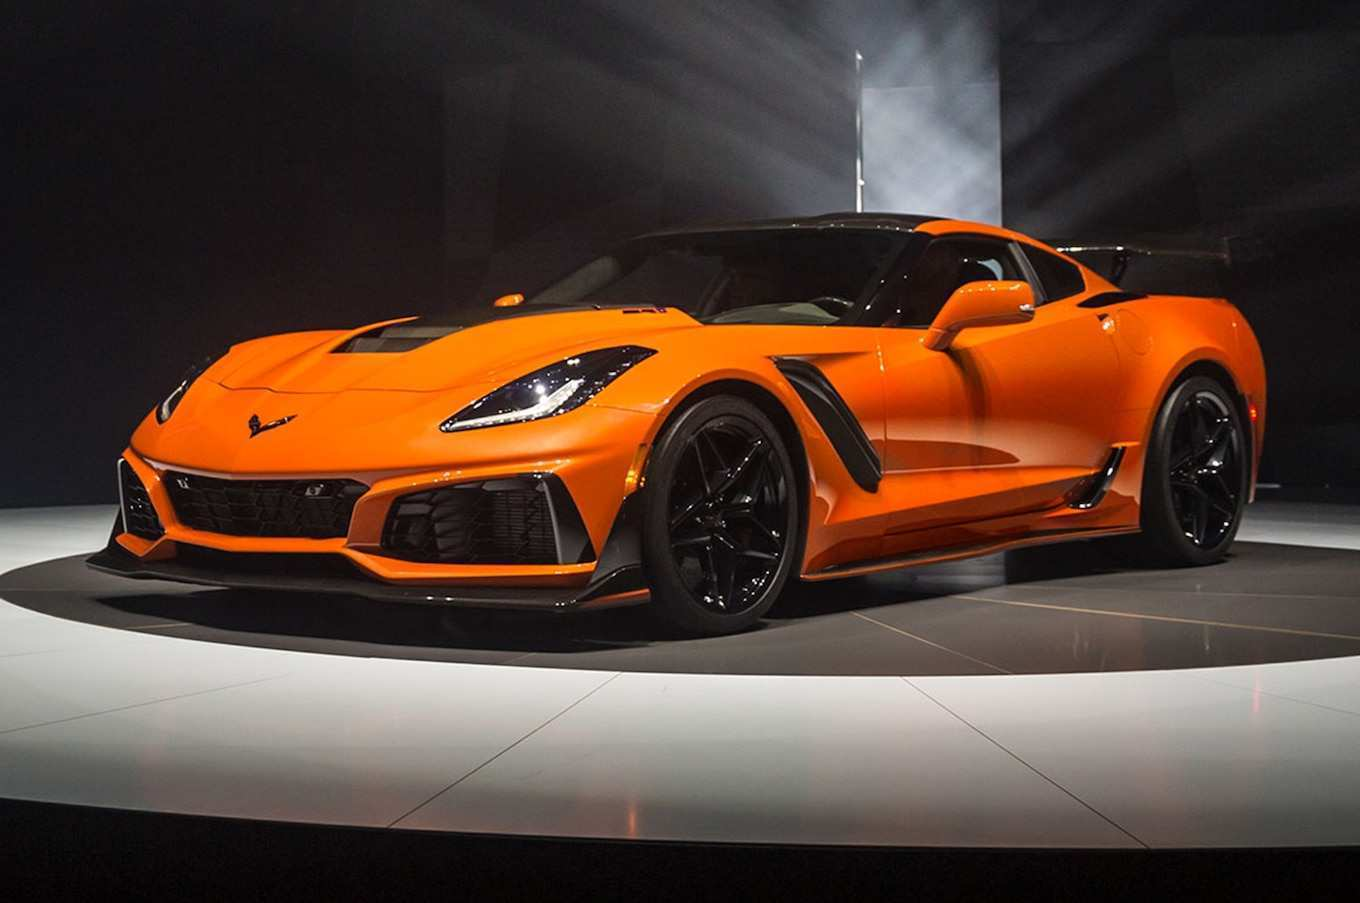 84 Concept of 2019 Chevrolet Corvette Zr1 Price Model for 2019 Chevrolet Corvette Zr1 Price